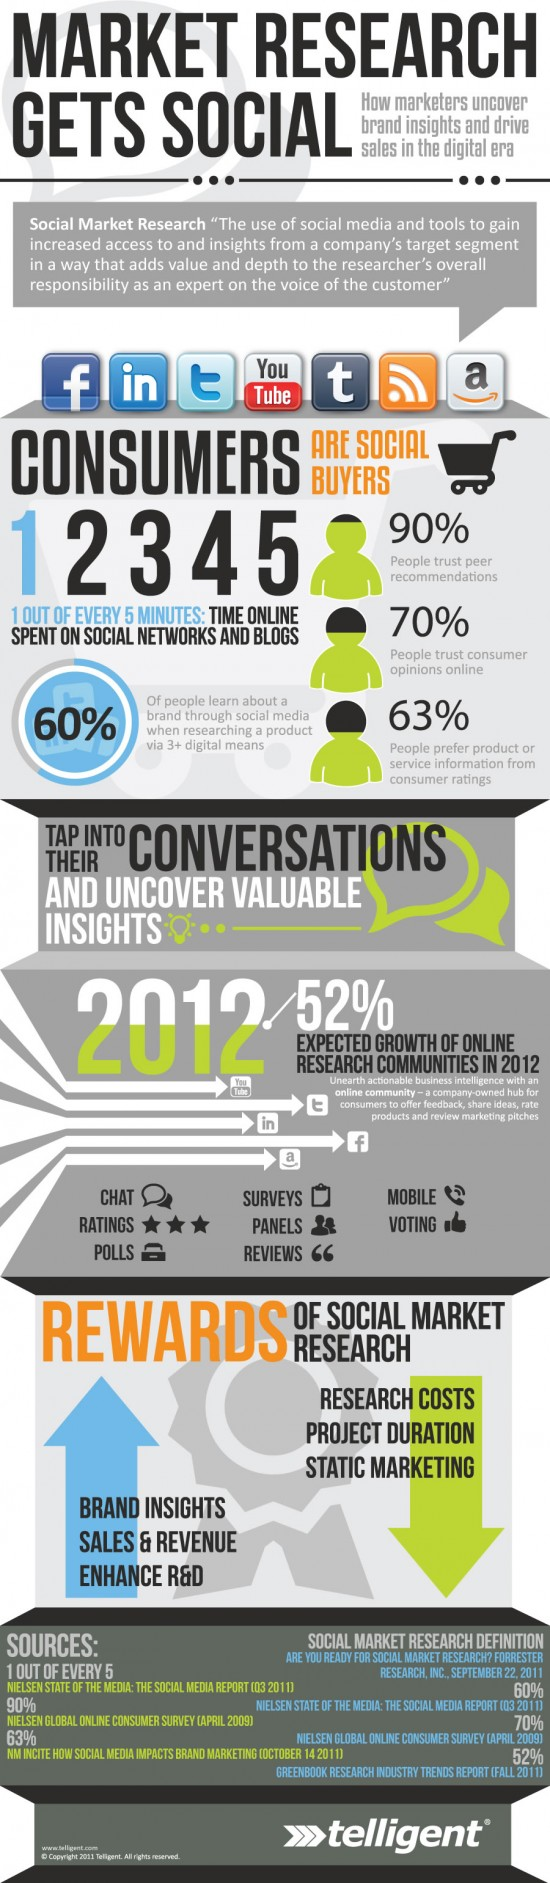 Market-Research-Gets-Social-Infographic